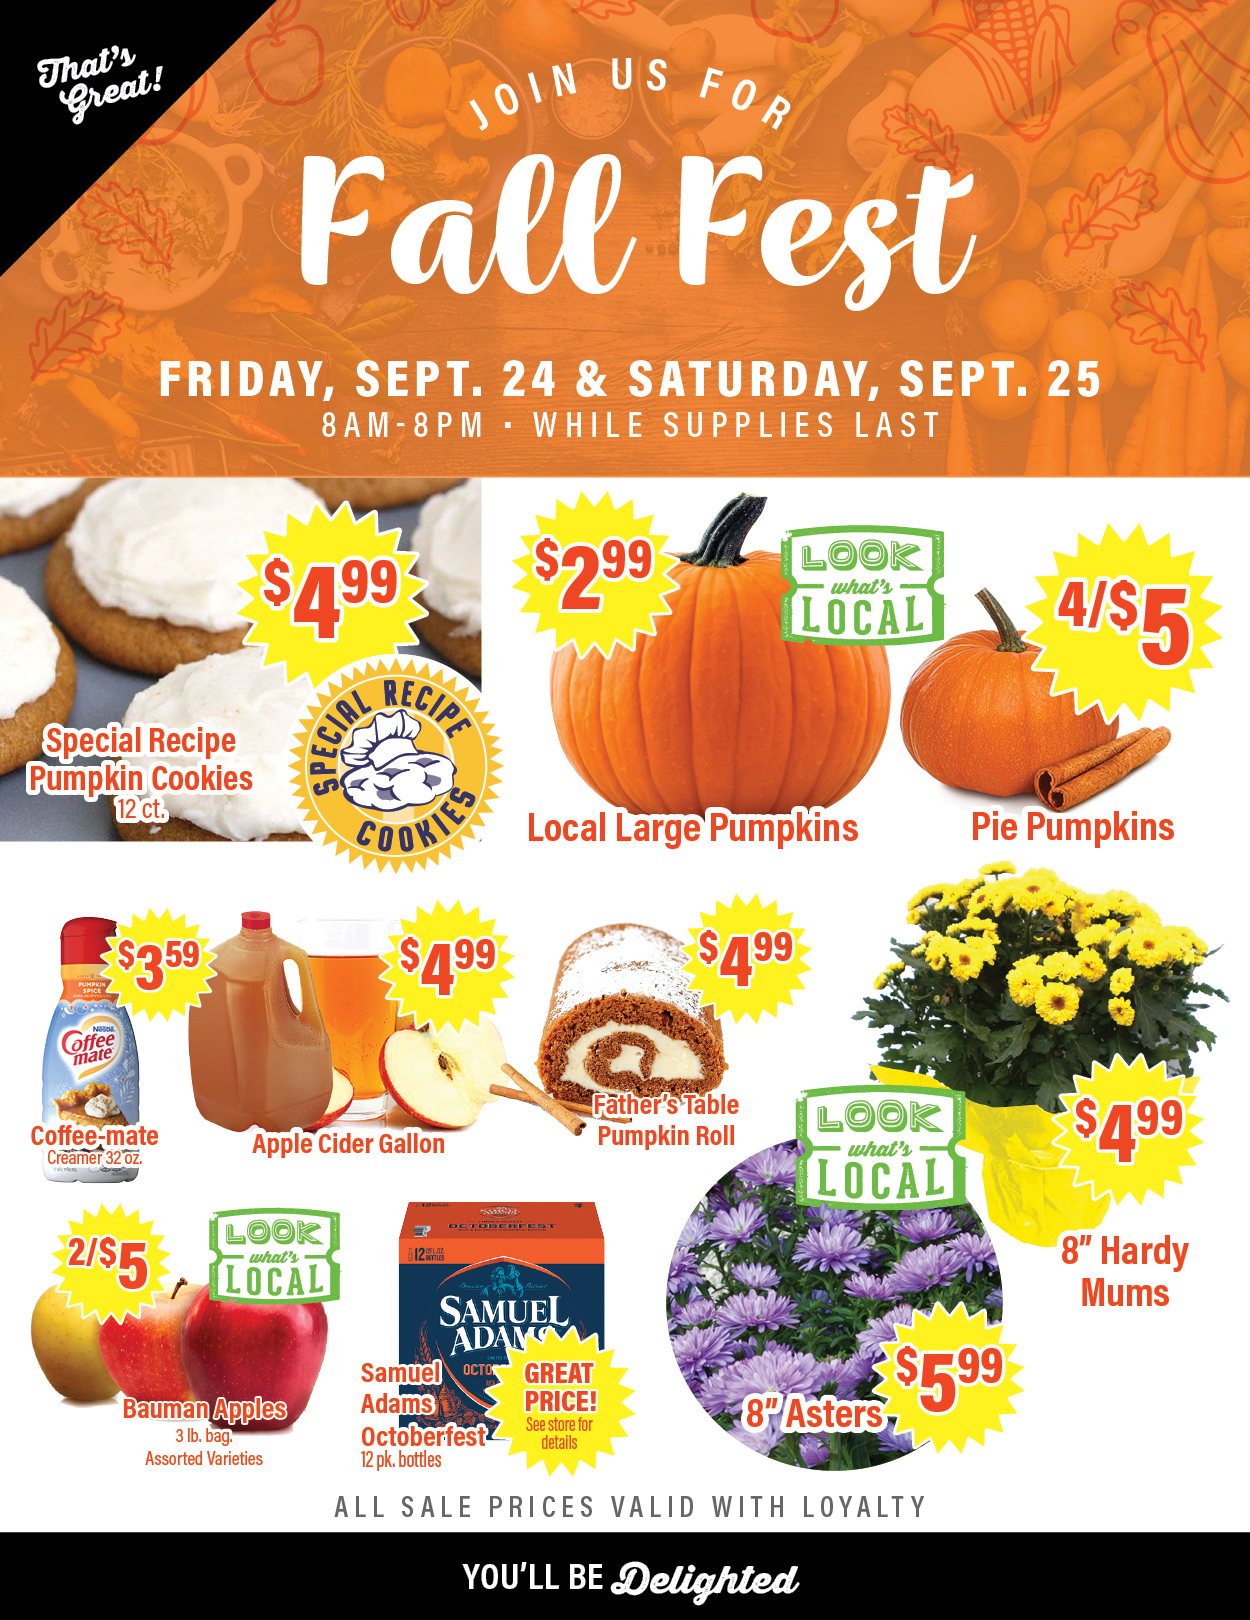 Join us for Fall Fest